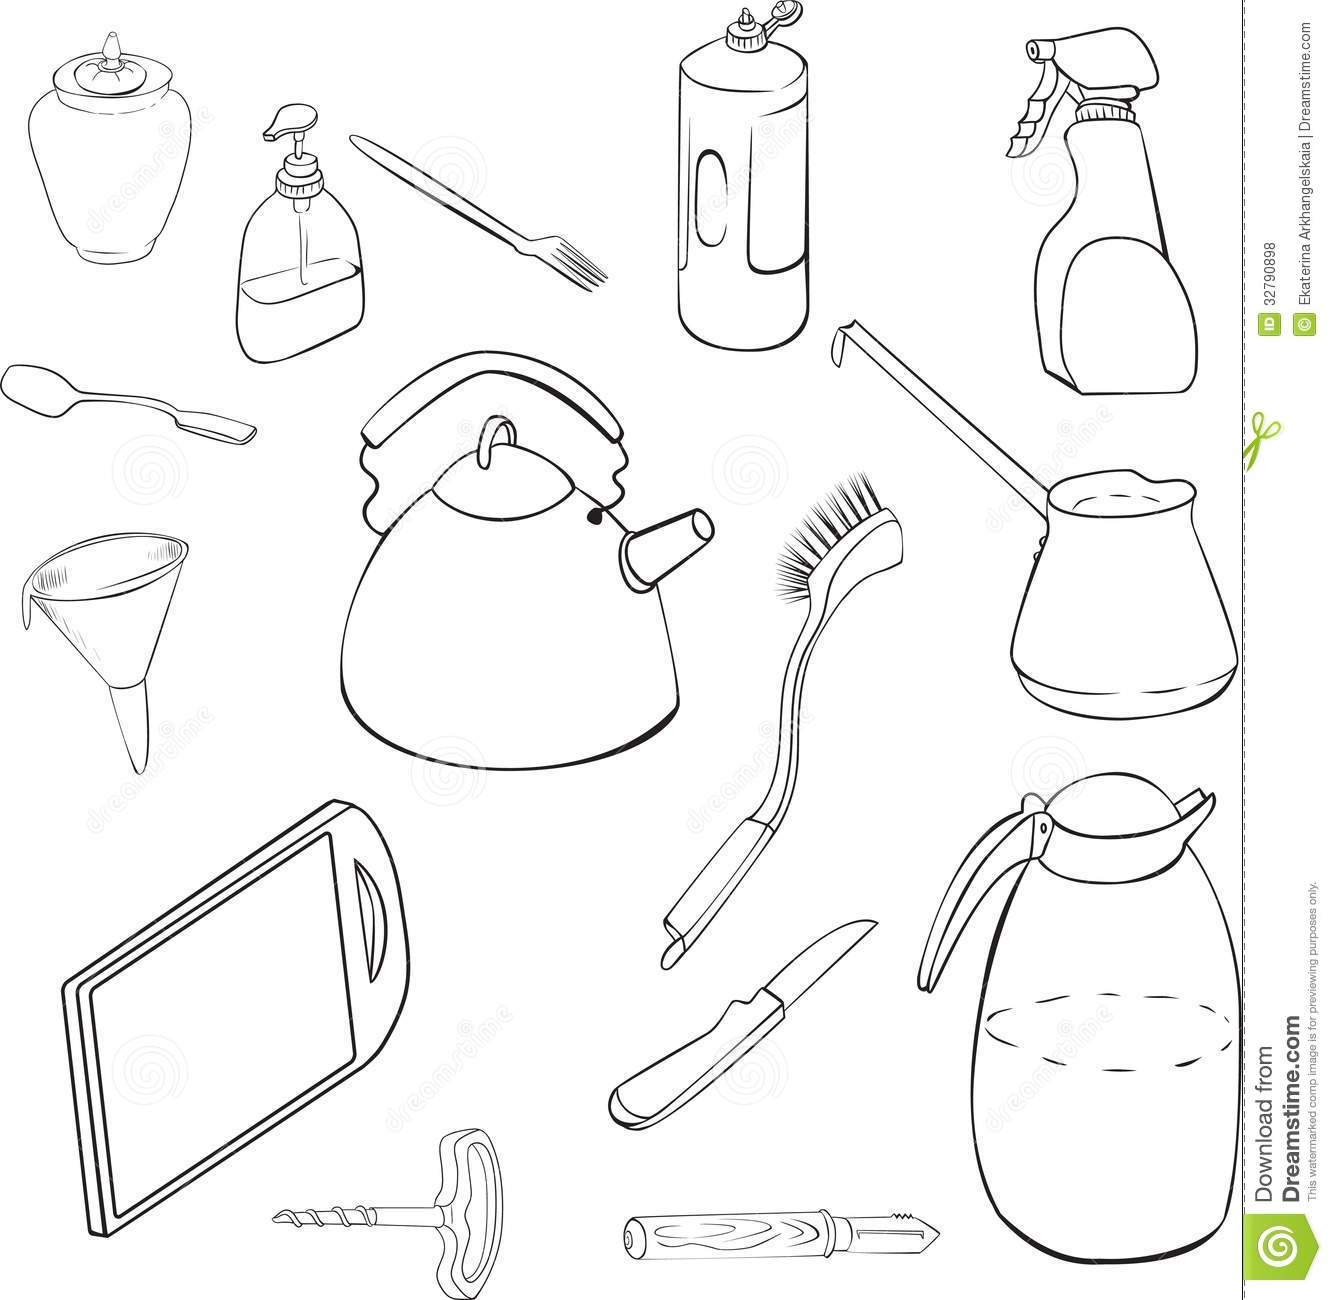 Linear Drawing Of Pots And Pans Stock Photo Image 32790898